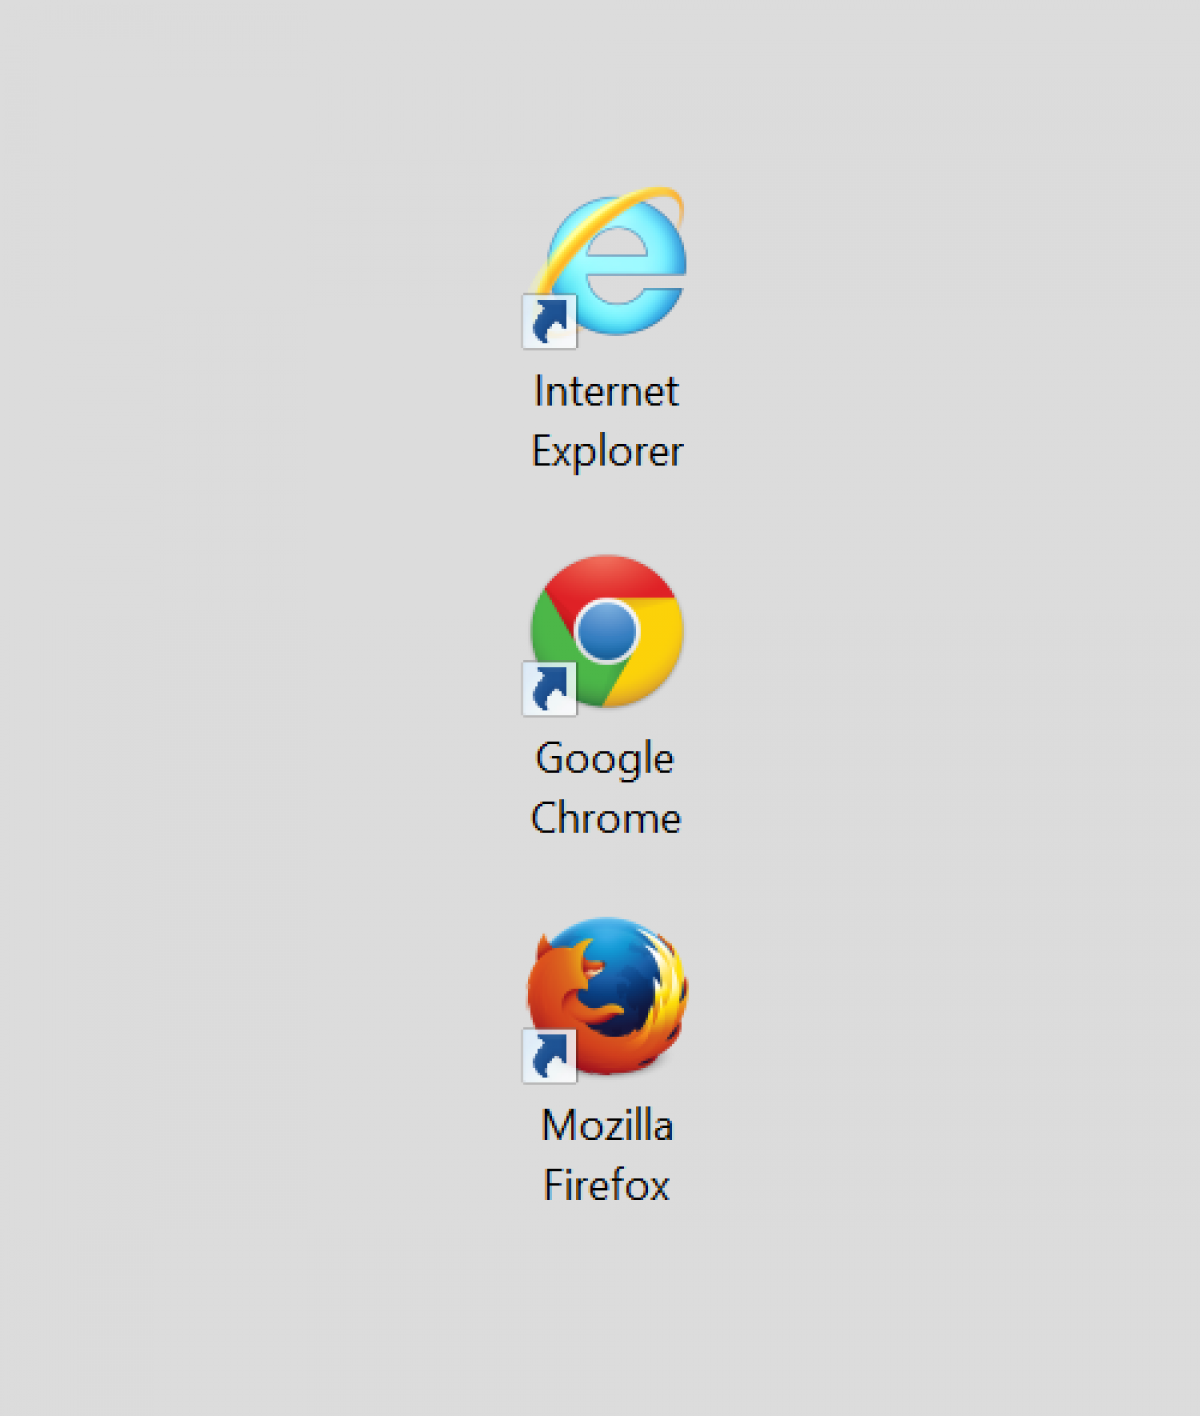 How do I update my browser